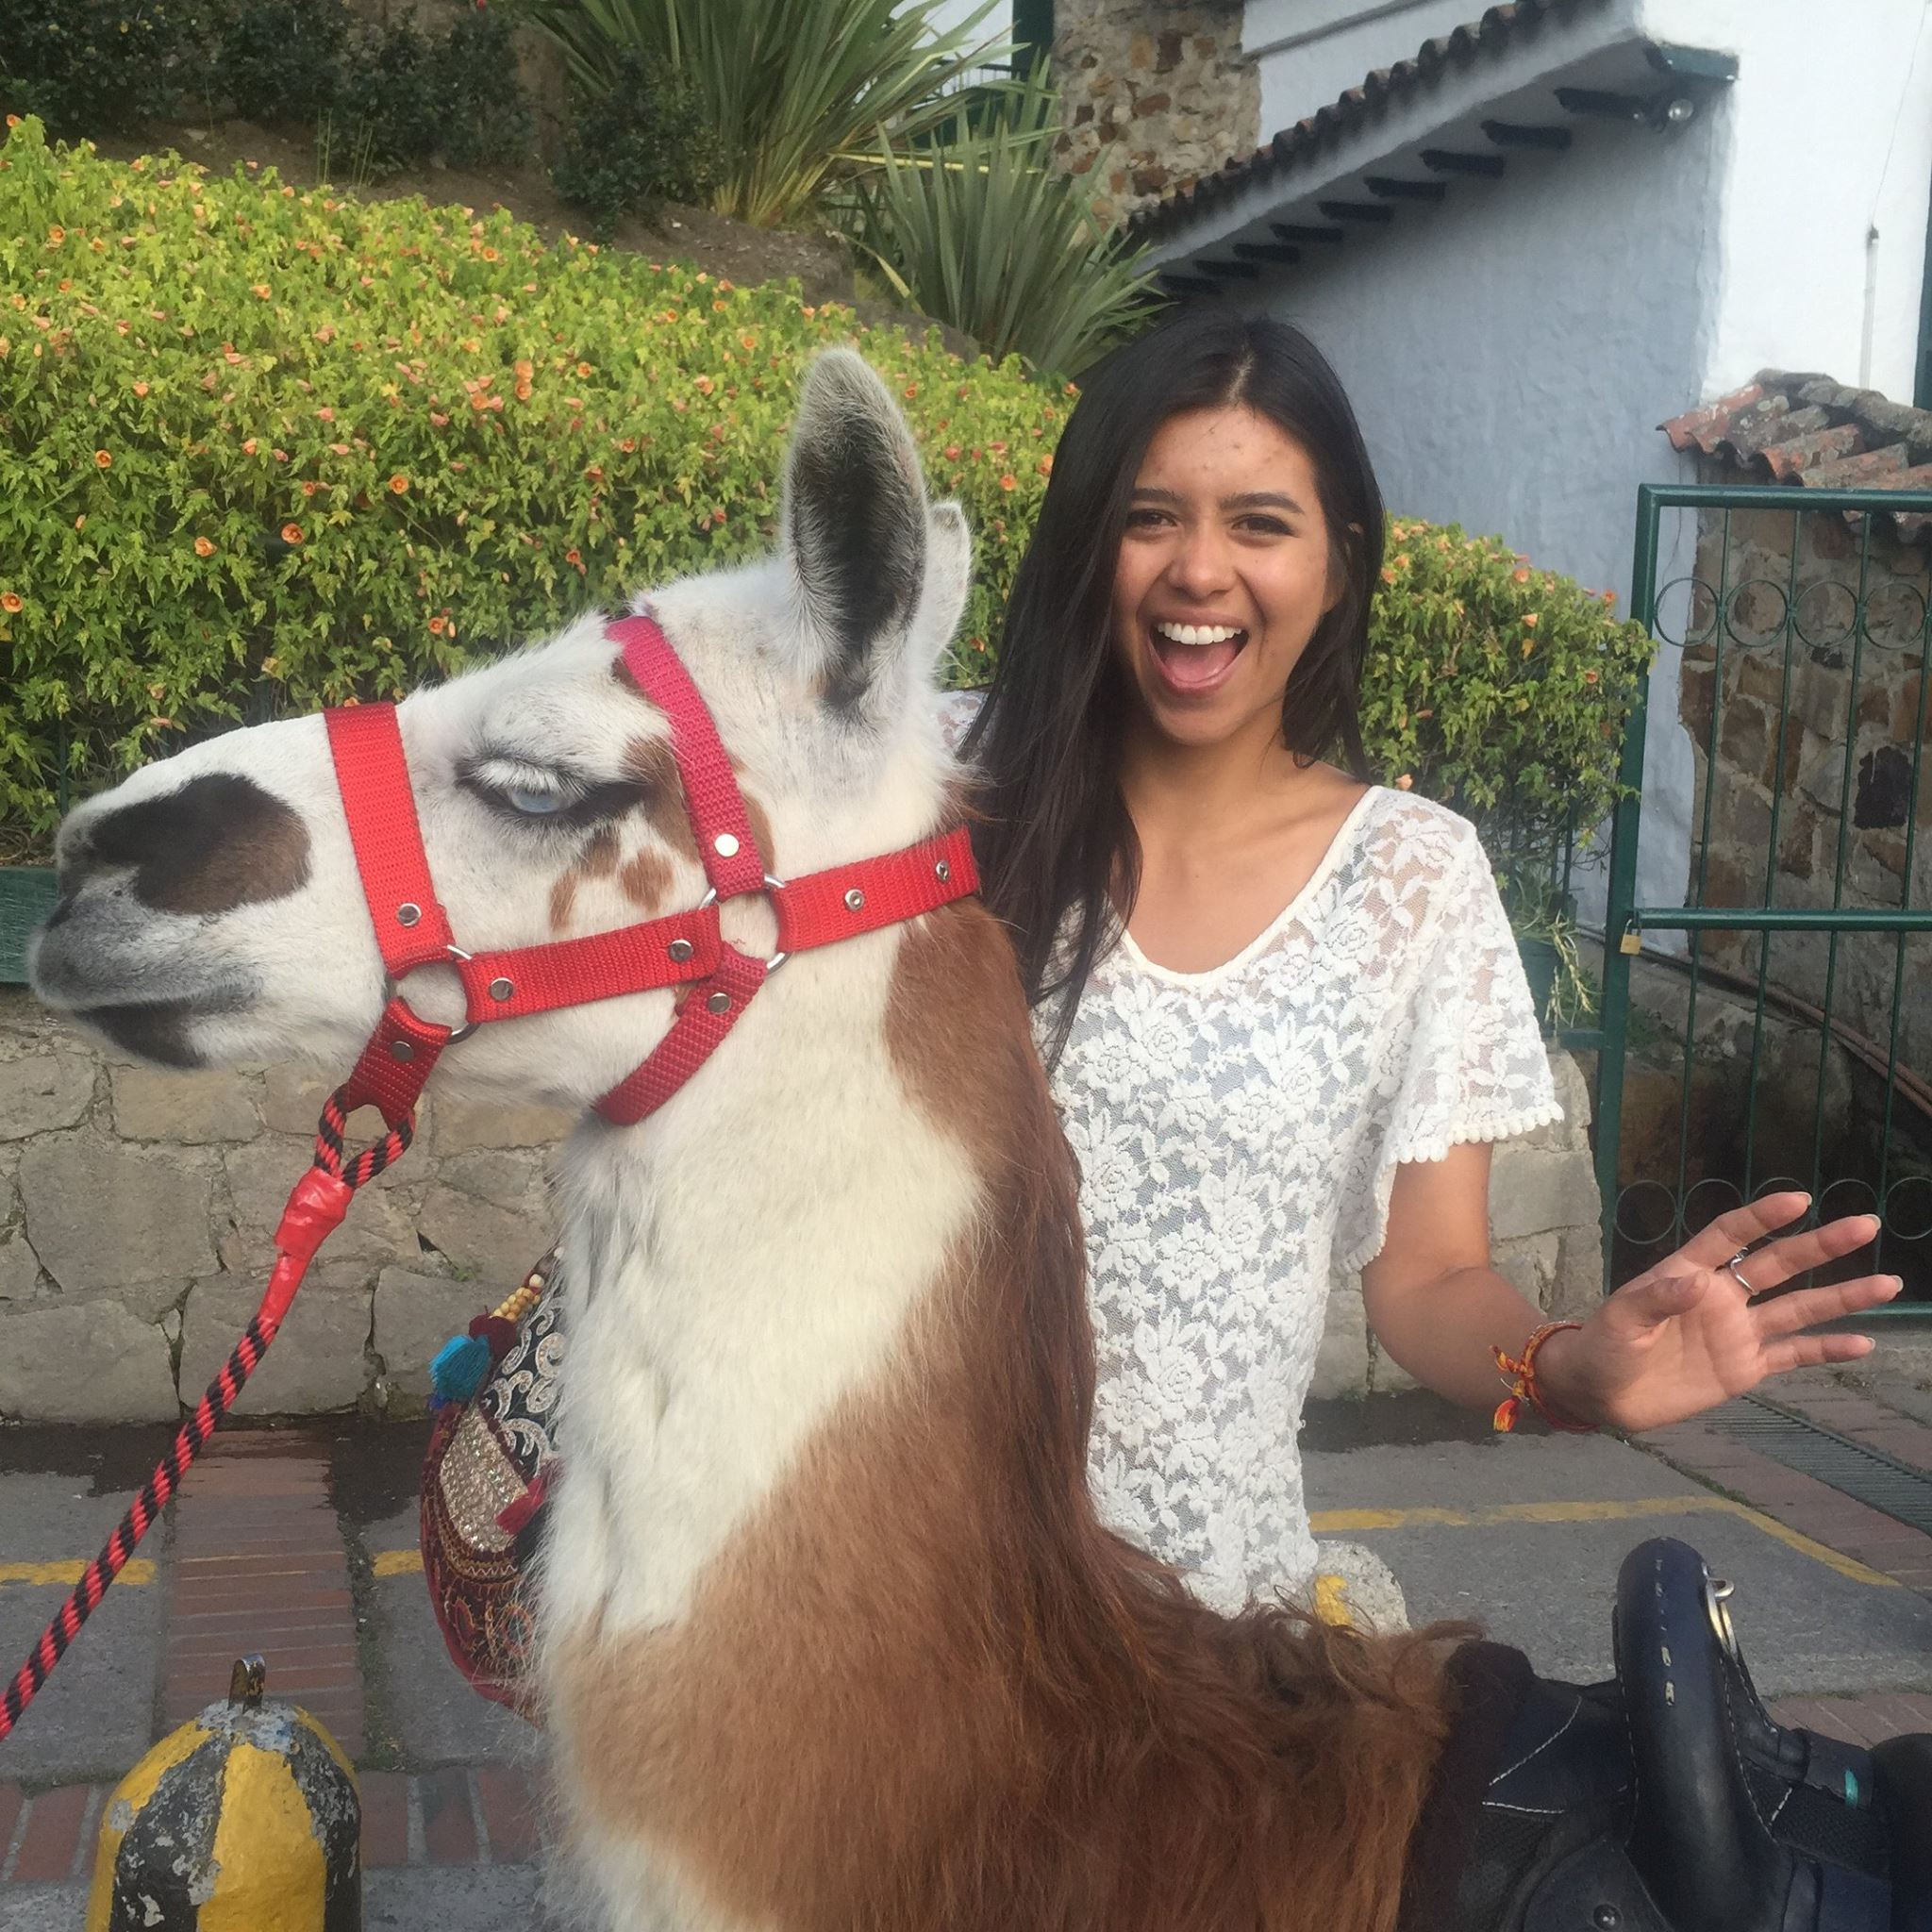 My friend Natalia & our amused llama friend at the entrance to Monserrate.